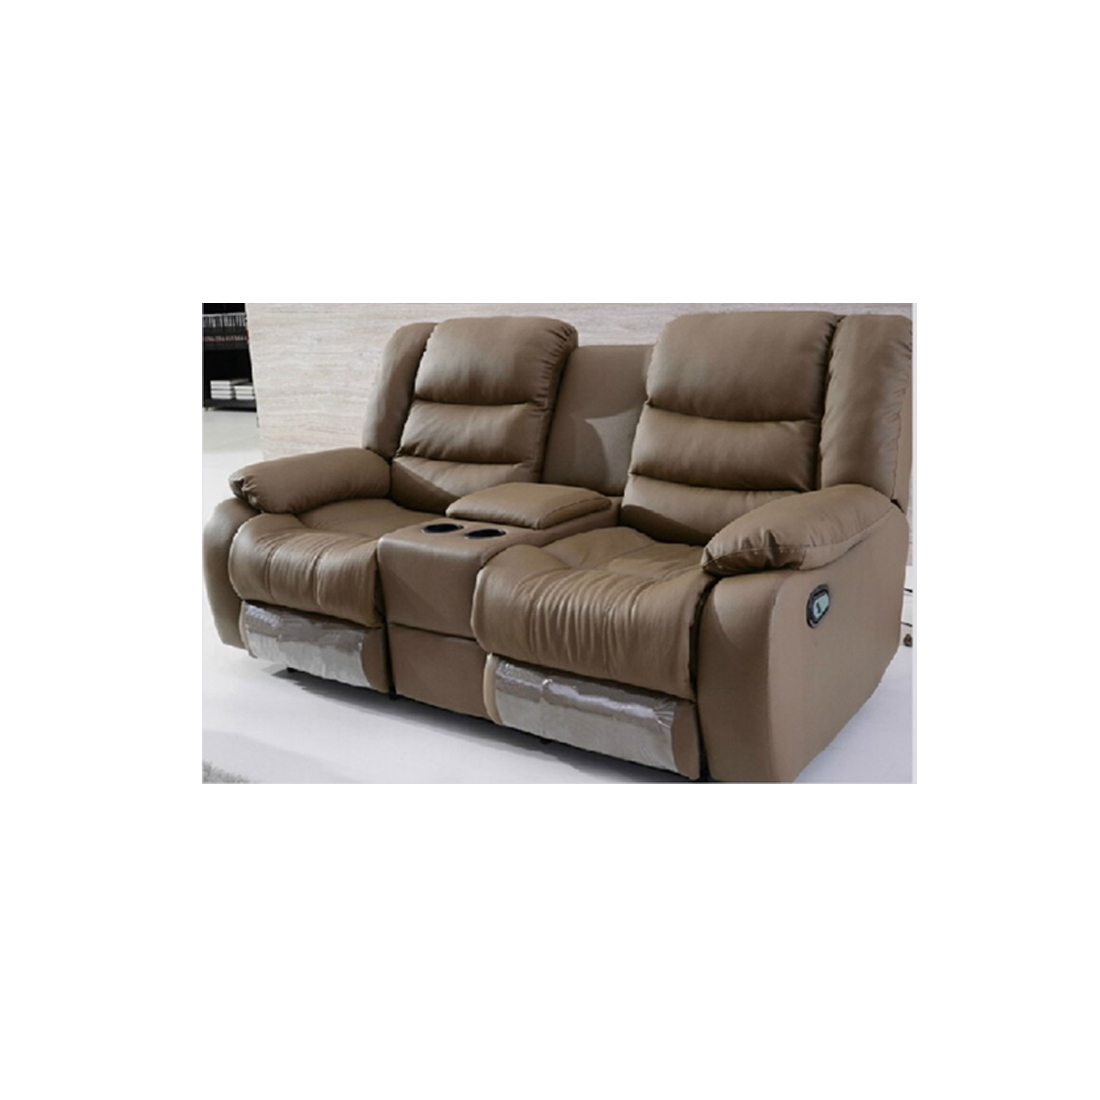 Yamas Recliner Leather Sofa With Cupholders Comfyland ~ Recliner Leather Sofa Deals